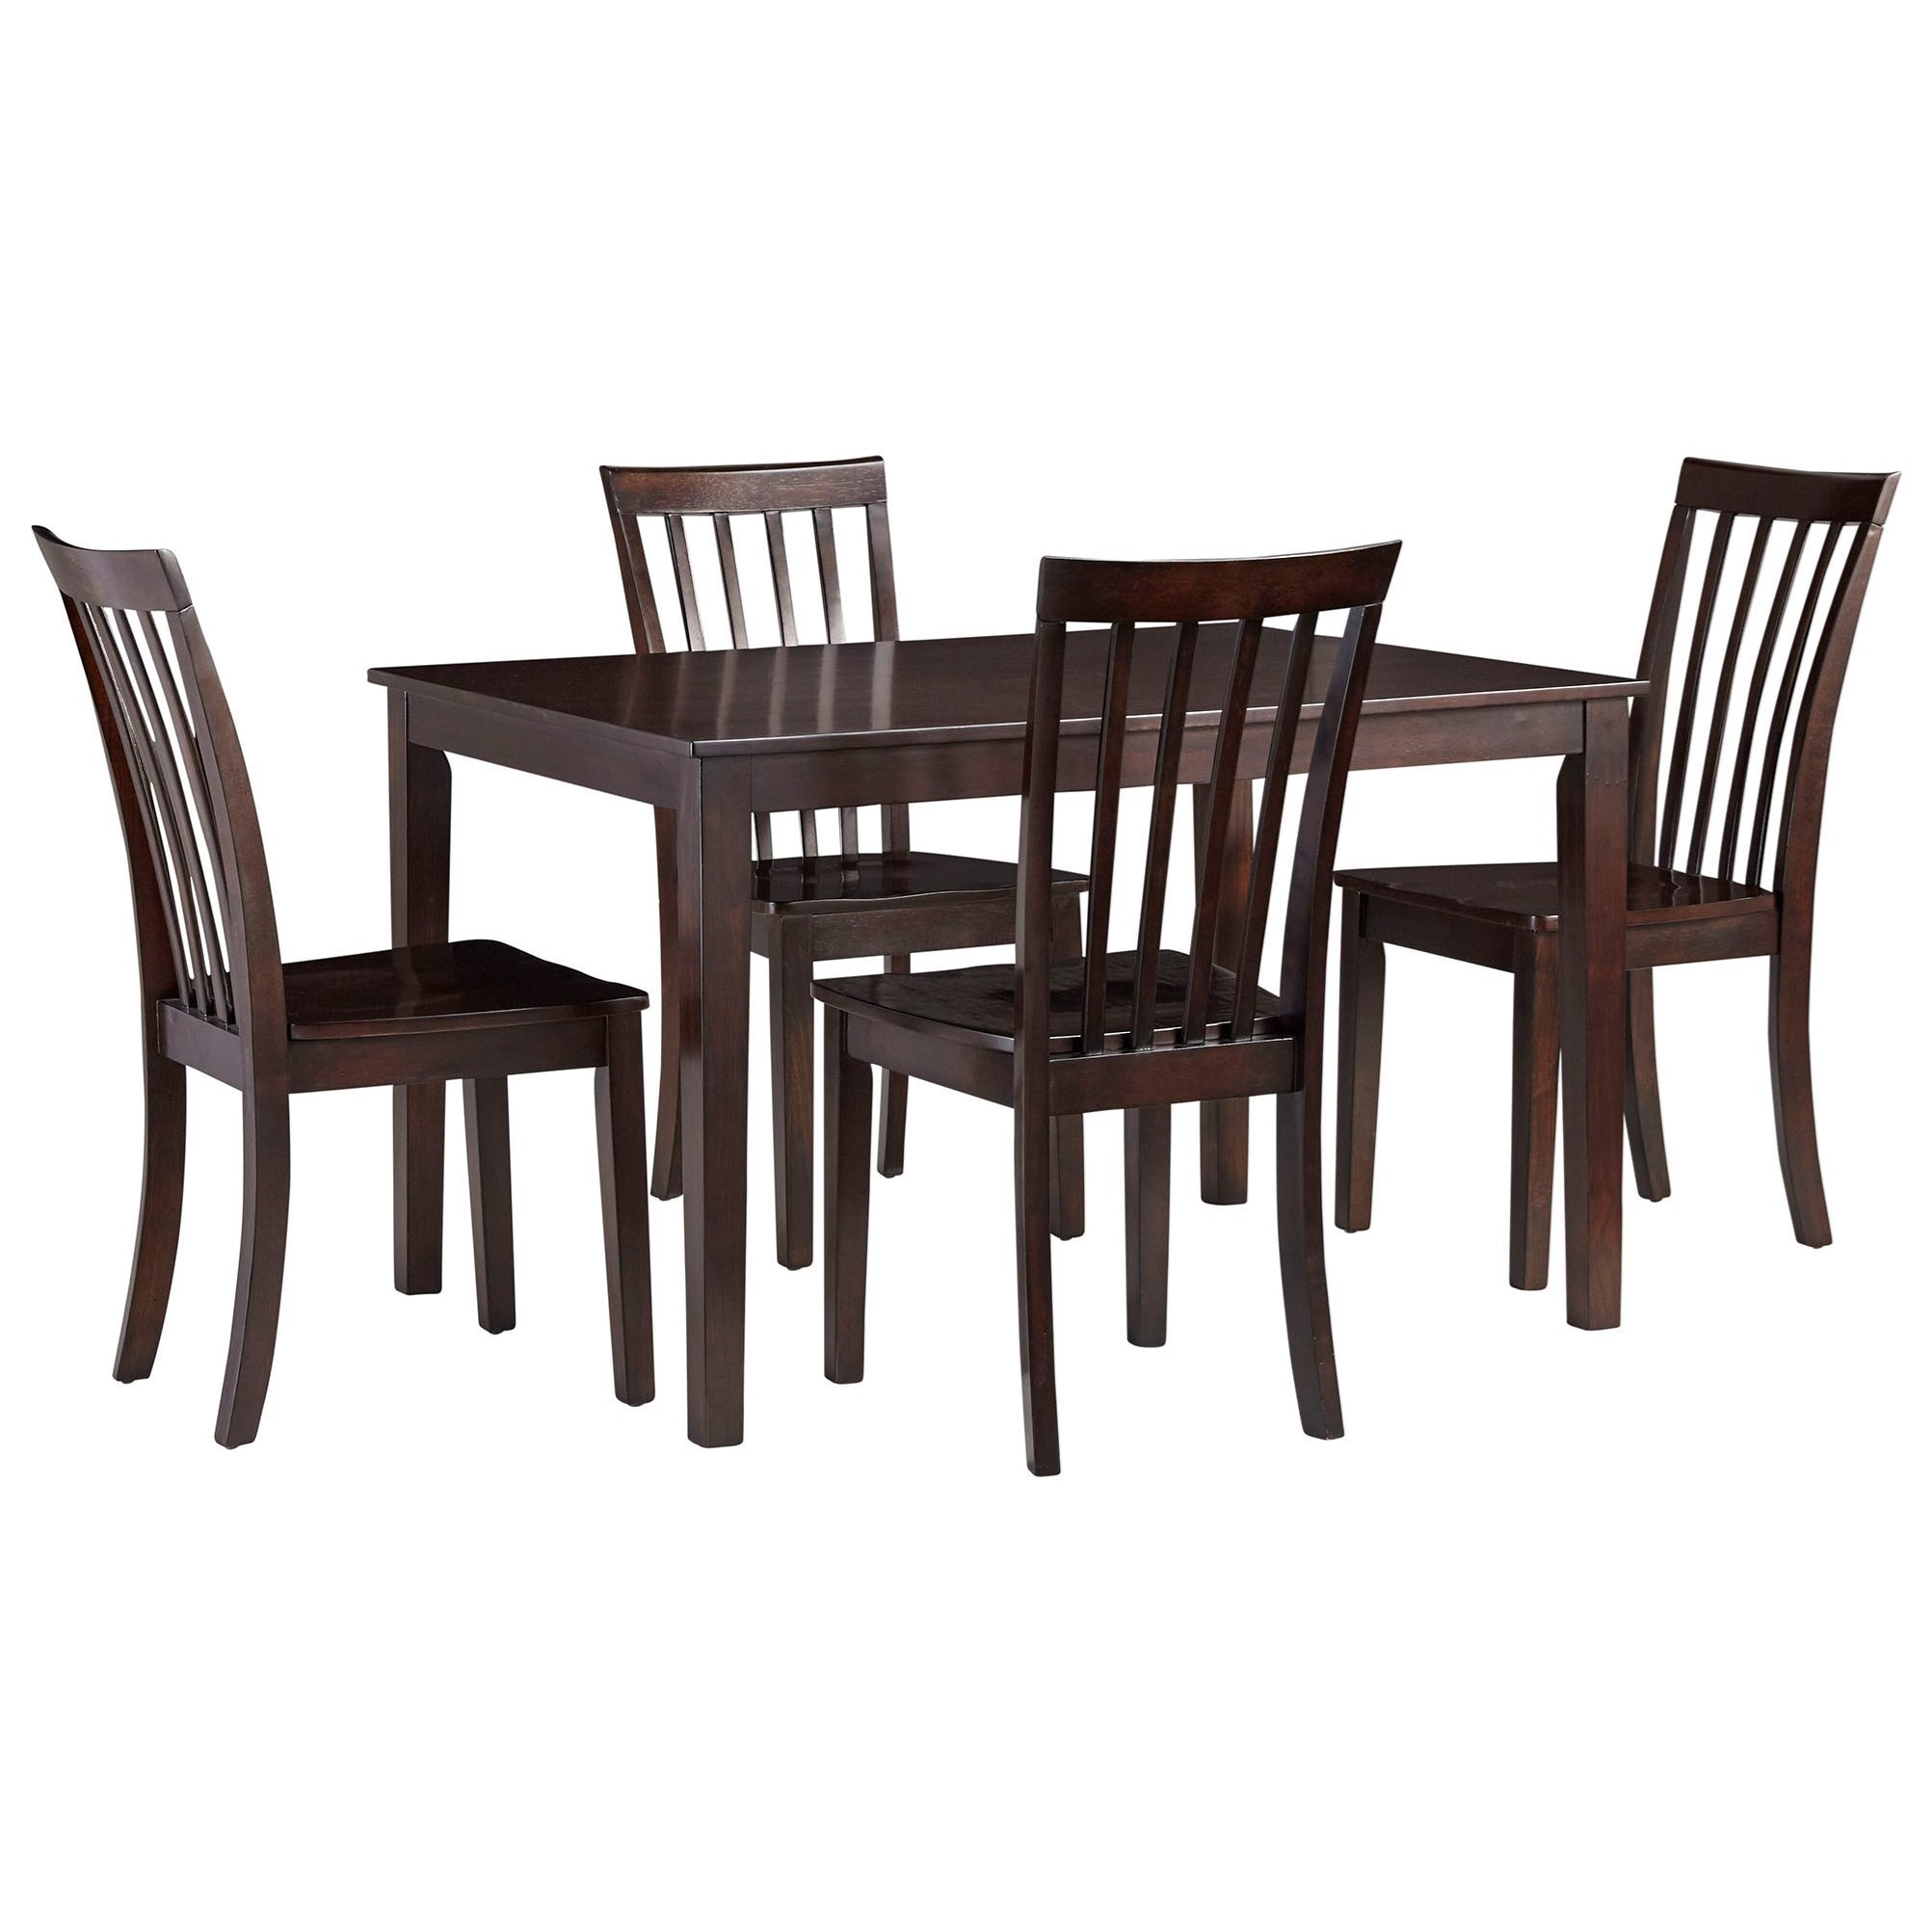 four chairs furniture small bistro table and chair standard stanton 18082 casual dining with dunk bright pub stool sets